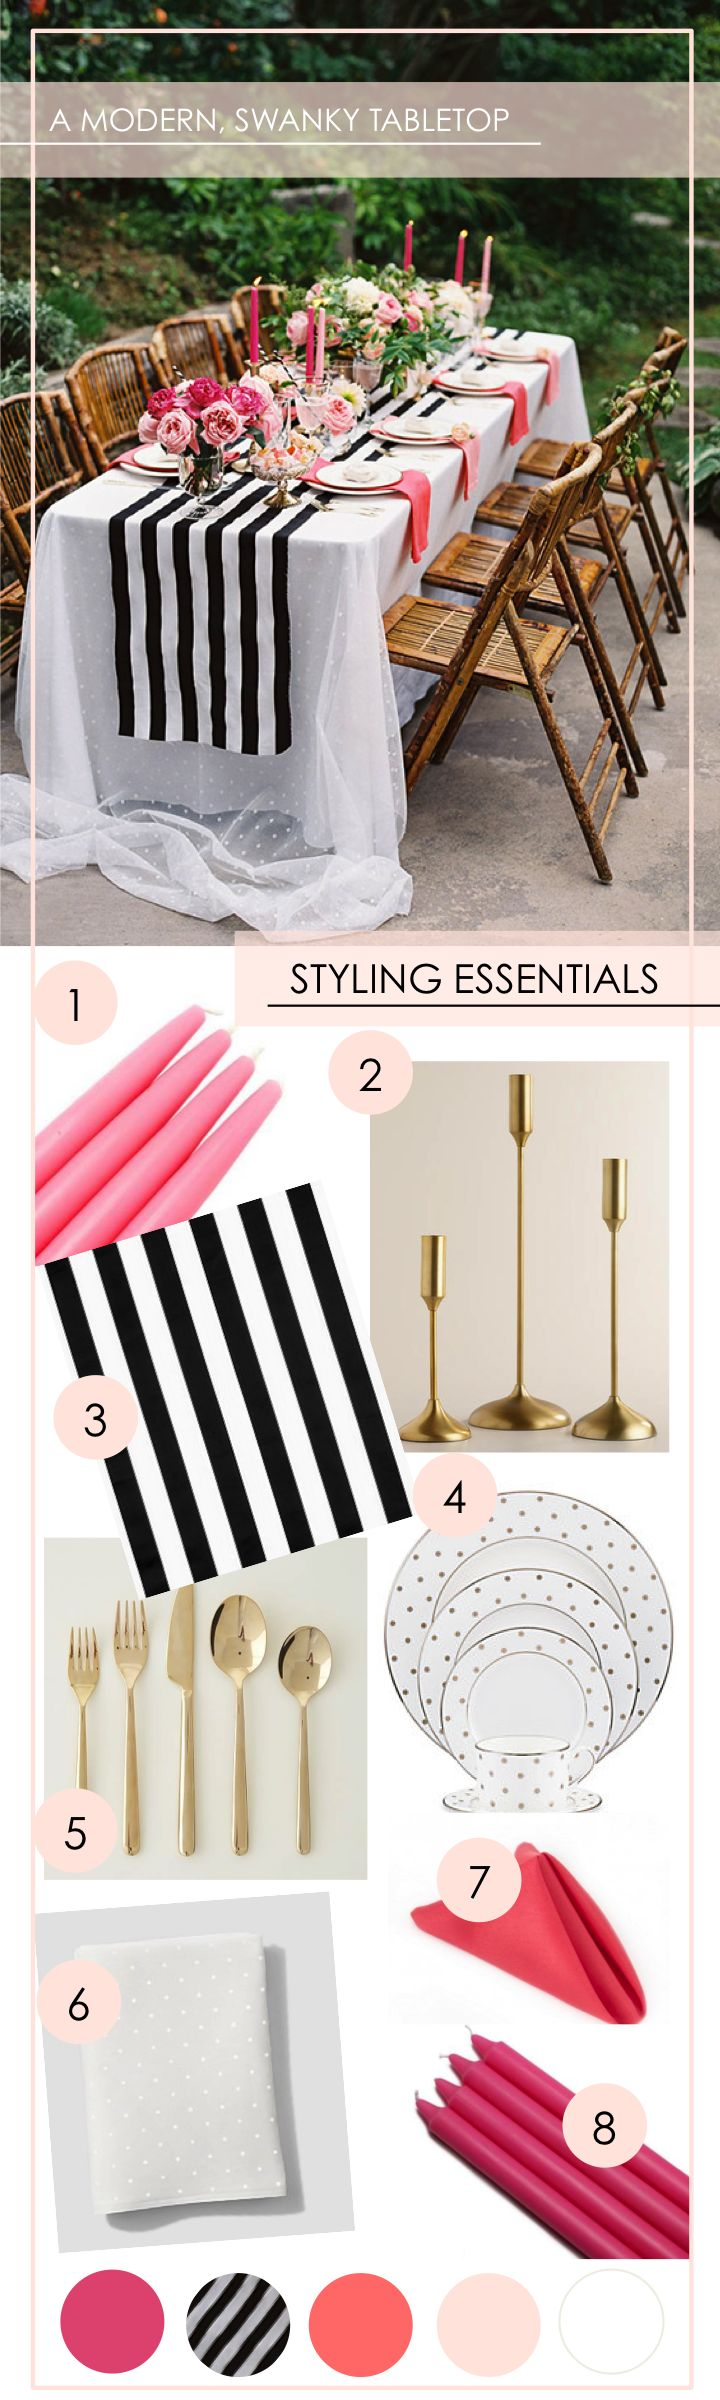 Get the Look: A Modern + Swanky Tabletop - www.theperfectpalette.com - Shades of Pink + Black and White Stripes